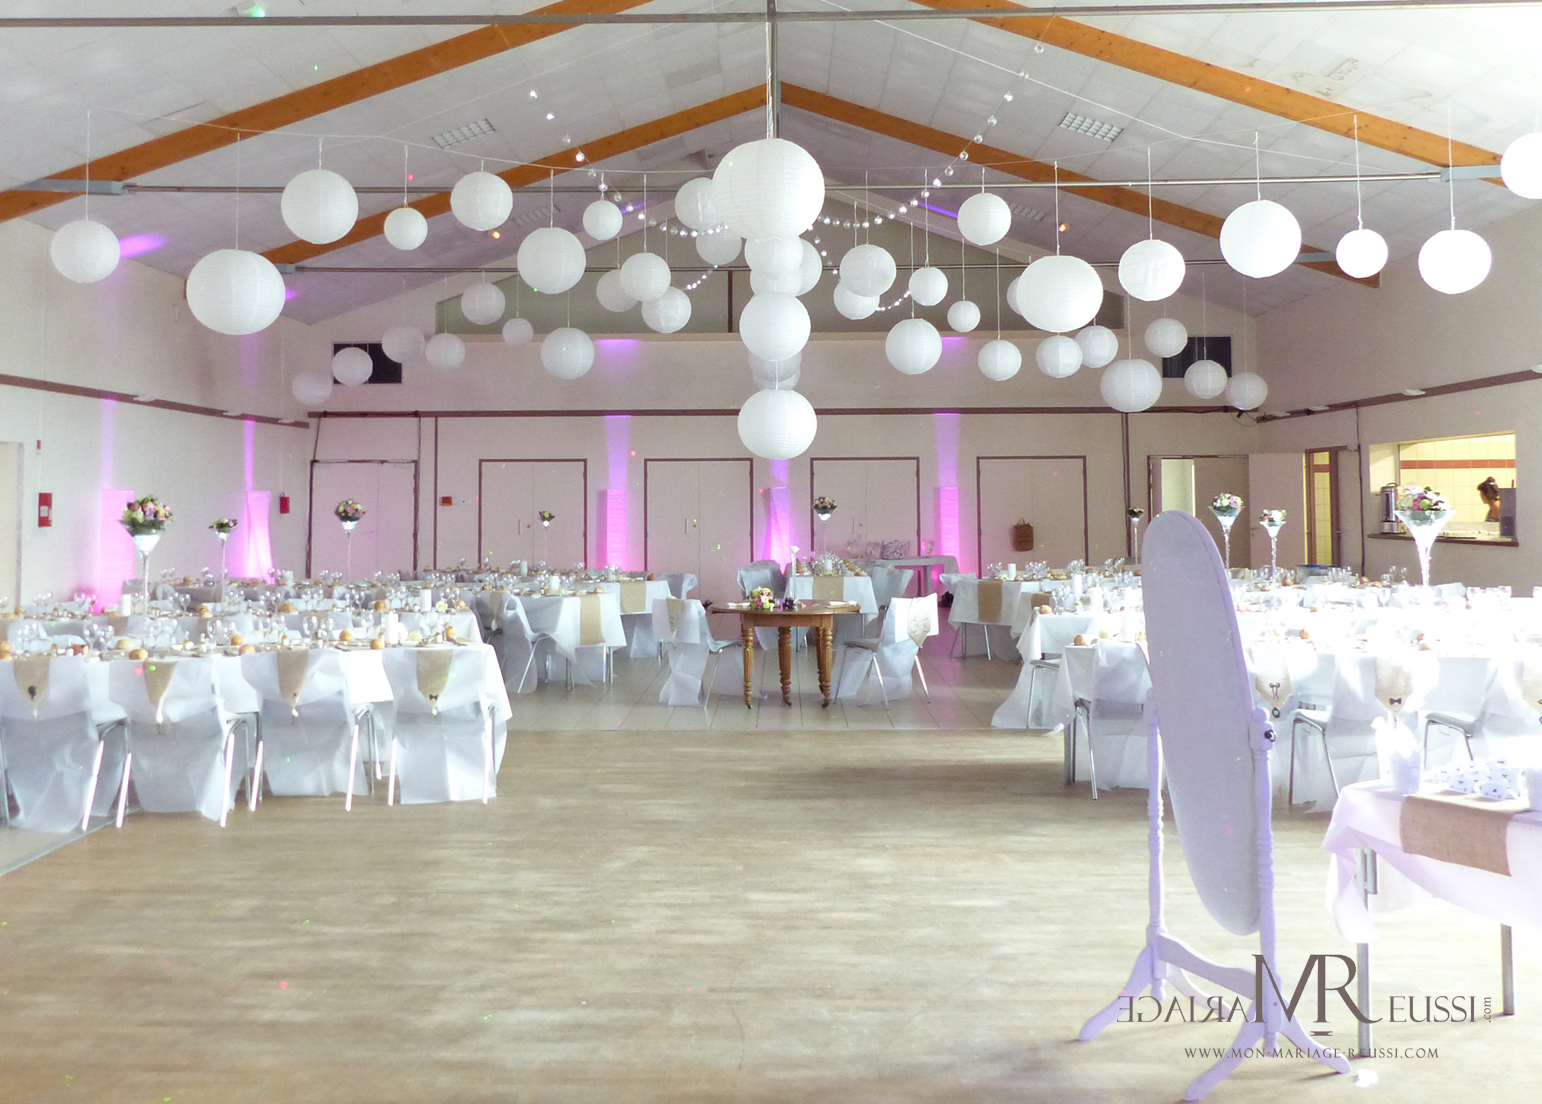 Prix decoration salle mariage le mariage for Decoration salle mariage